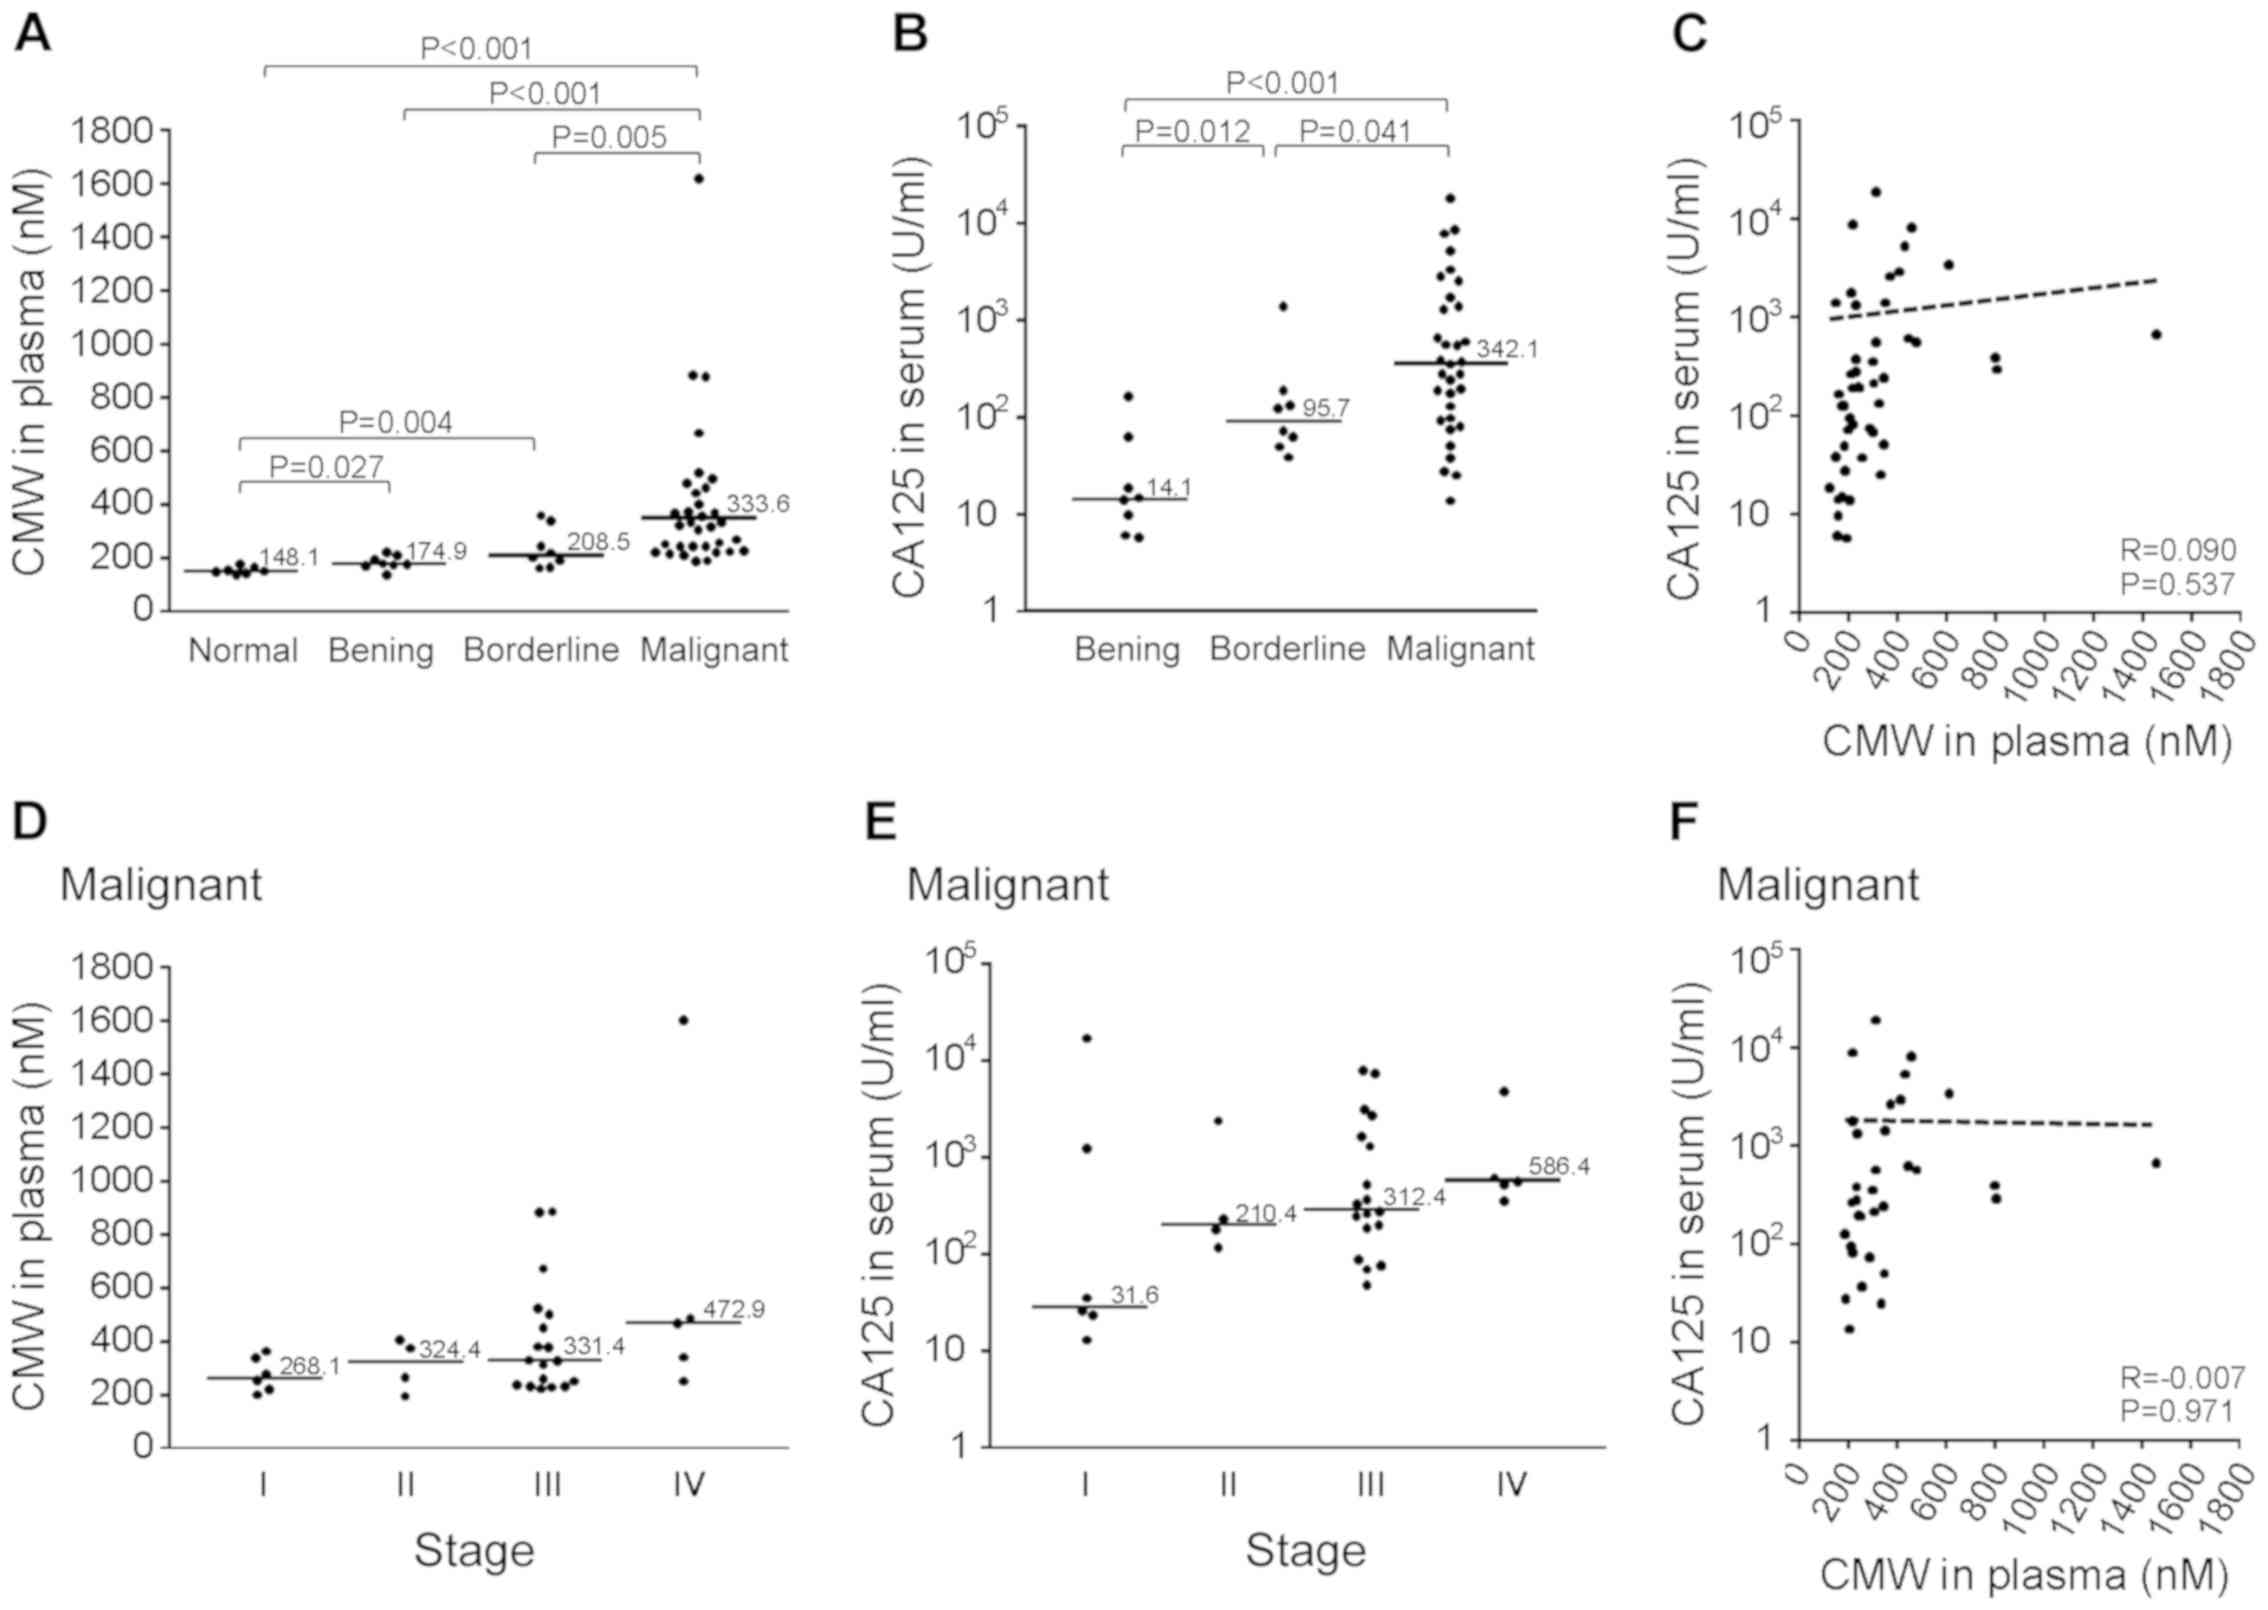 C Mannosyl Tryptophan Increases In The Plasma Of Patients With Ovarian Cancer